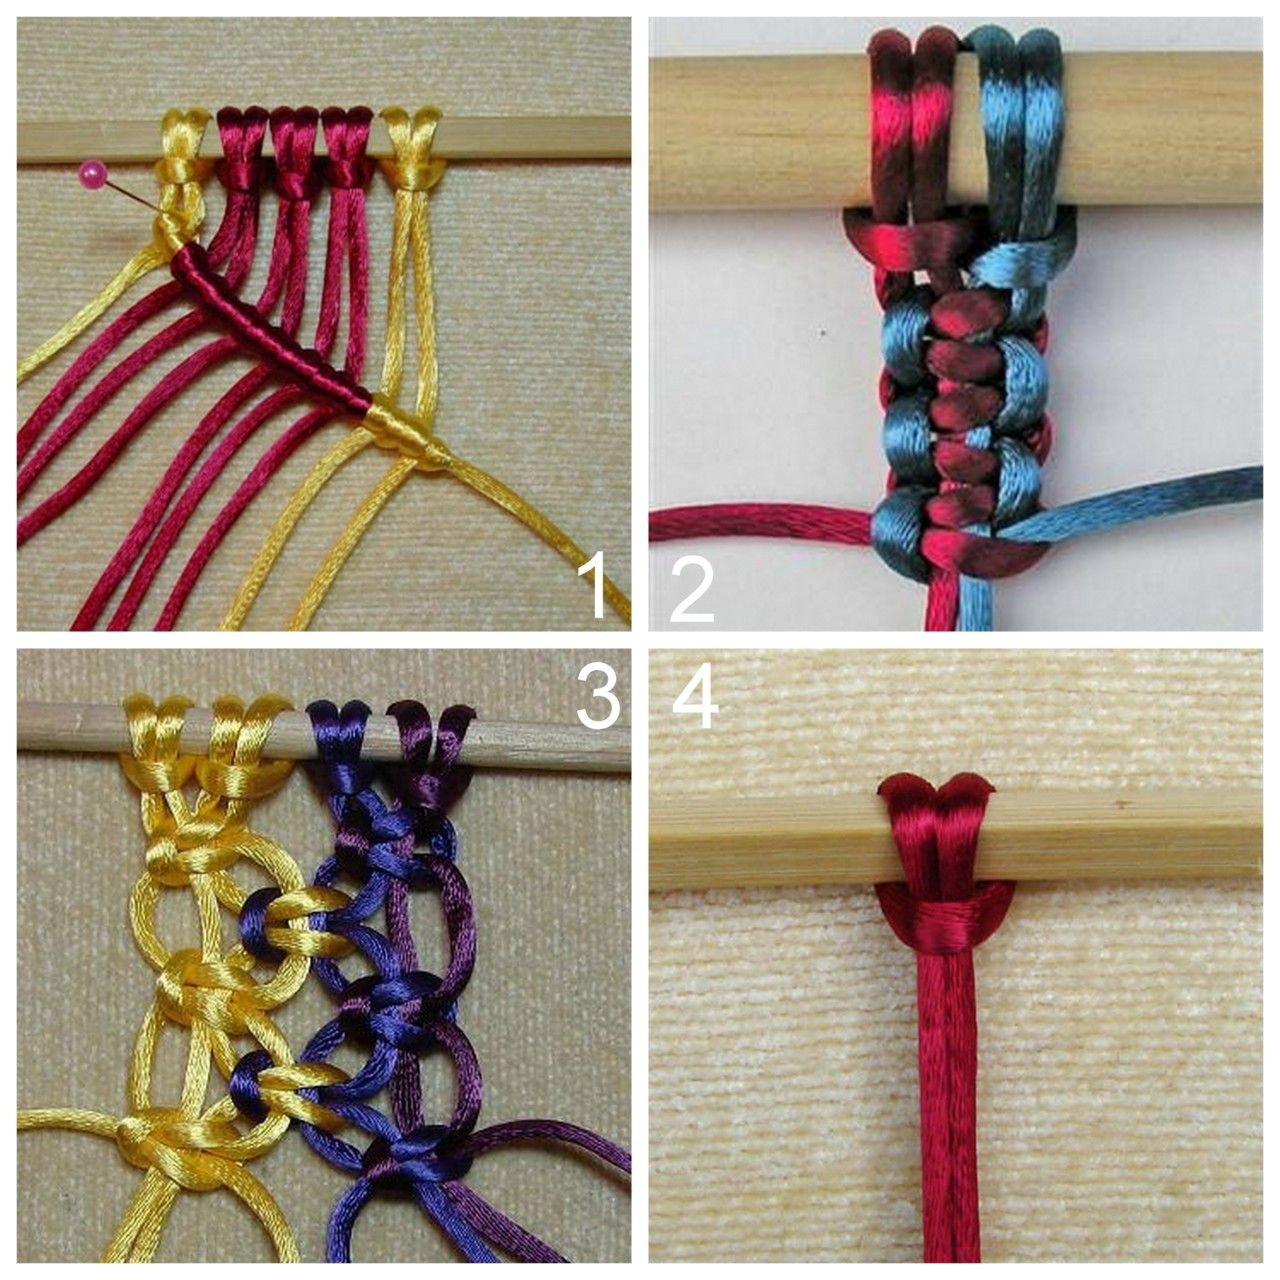 There Is A Link For All Kinds Of Macrame Patterns